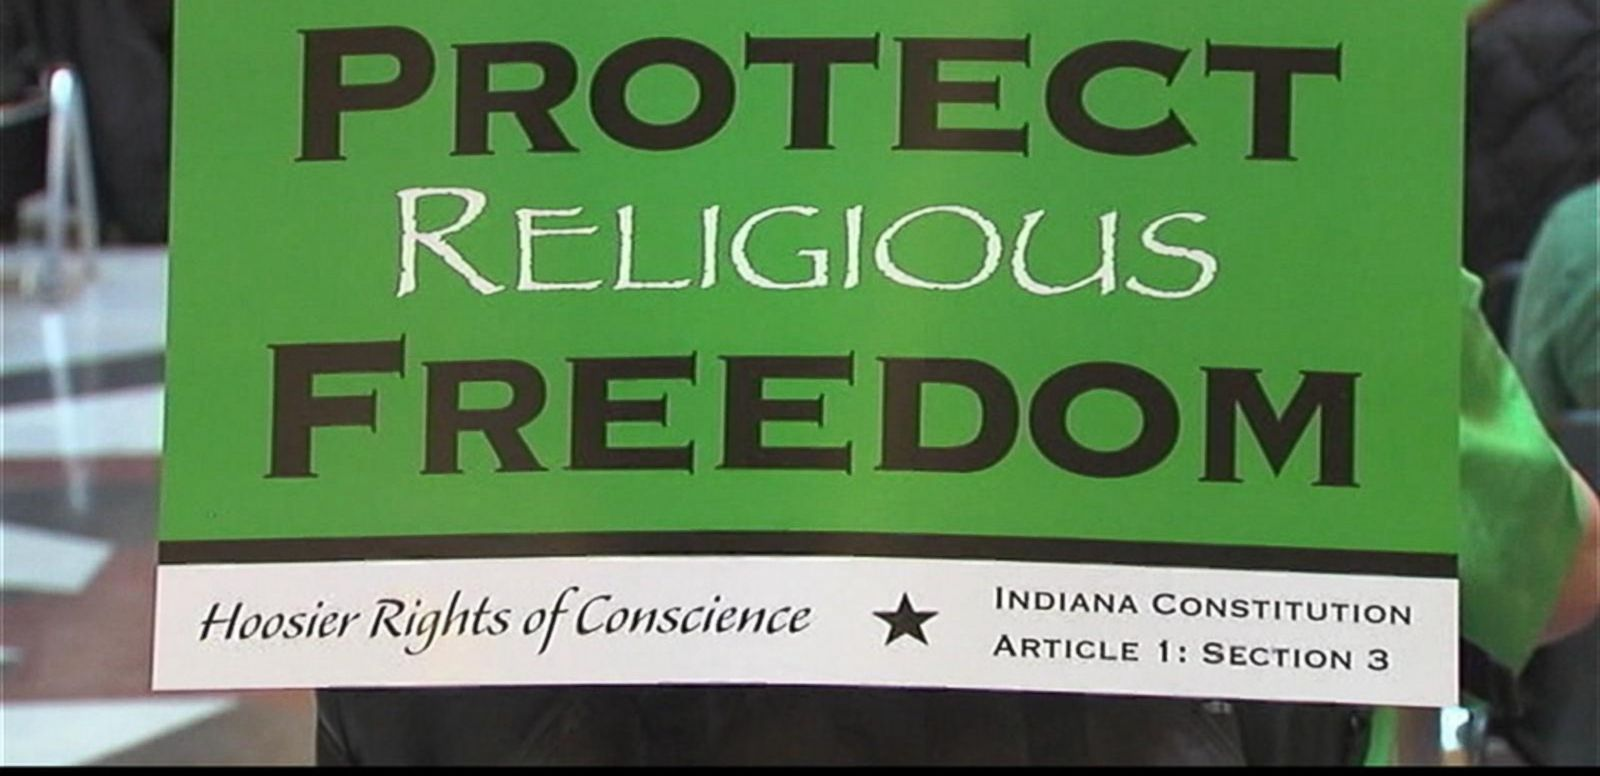 VIDEO: Political Firestorm Brews Over Indiana's 'Religious Freedom' Law